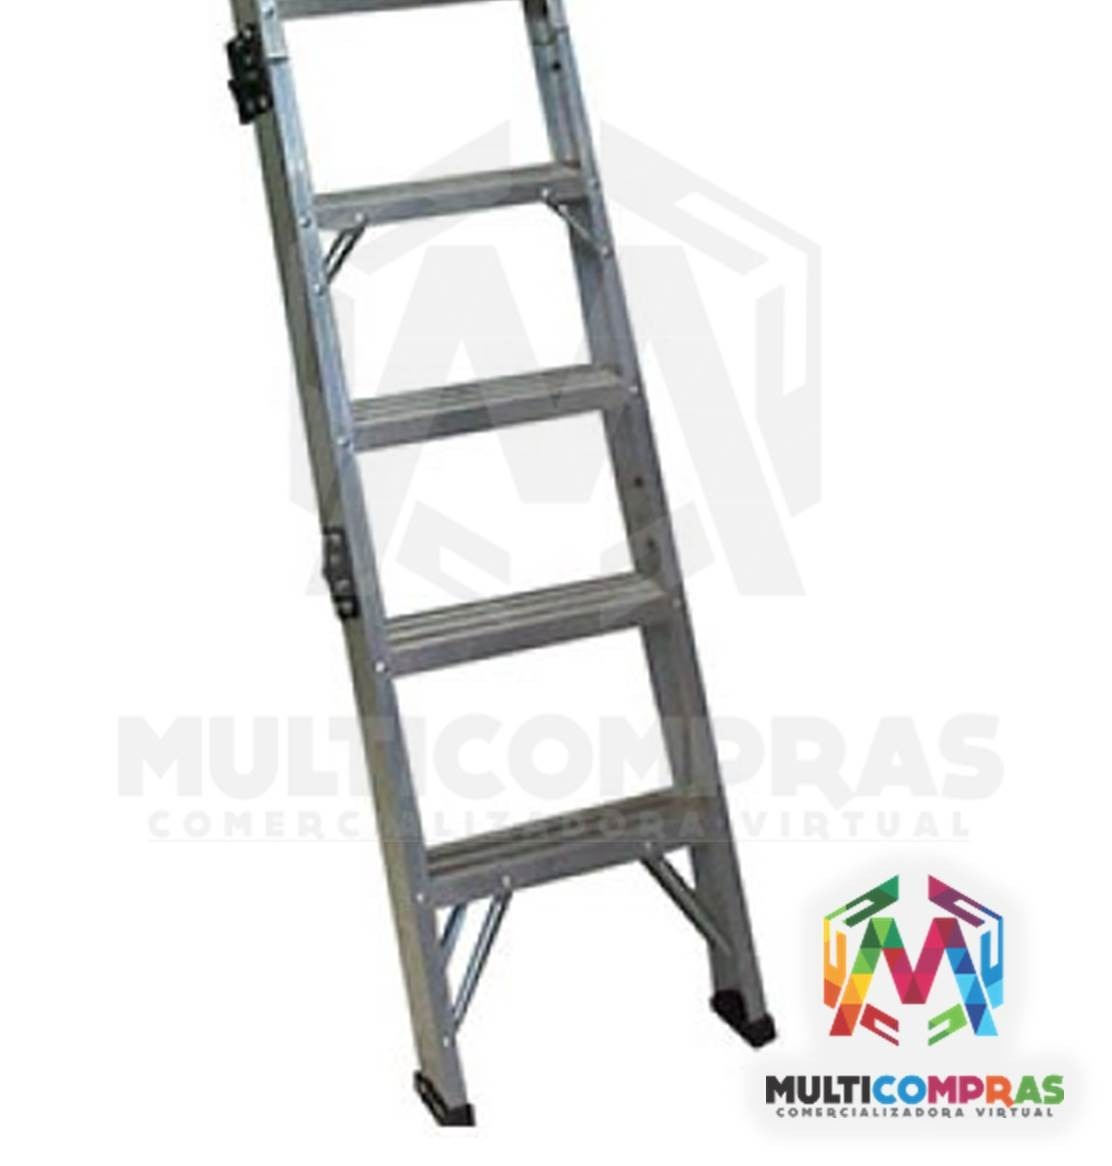 Escaleras superior techo cielo madera guardada altillo metal en mercado libre - Escalera plegable altillo ...